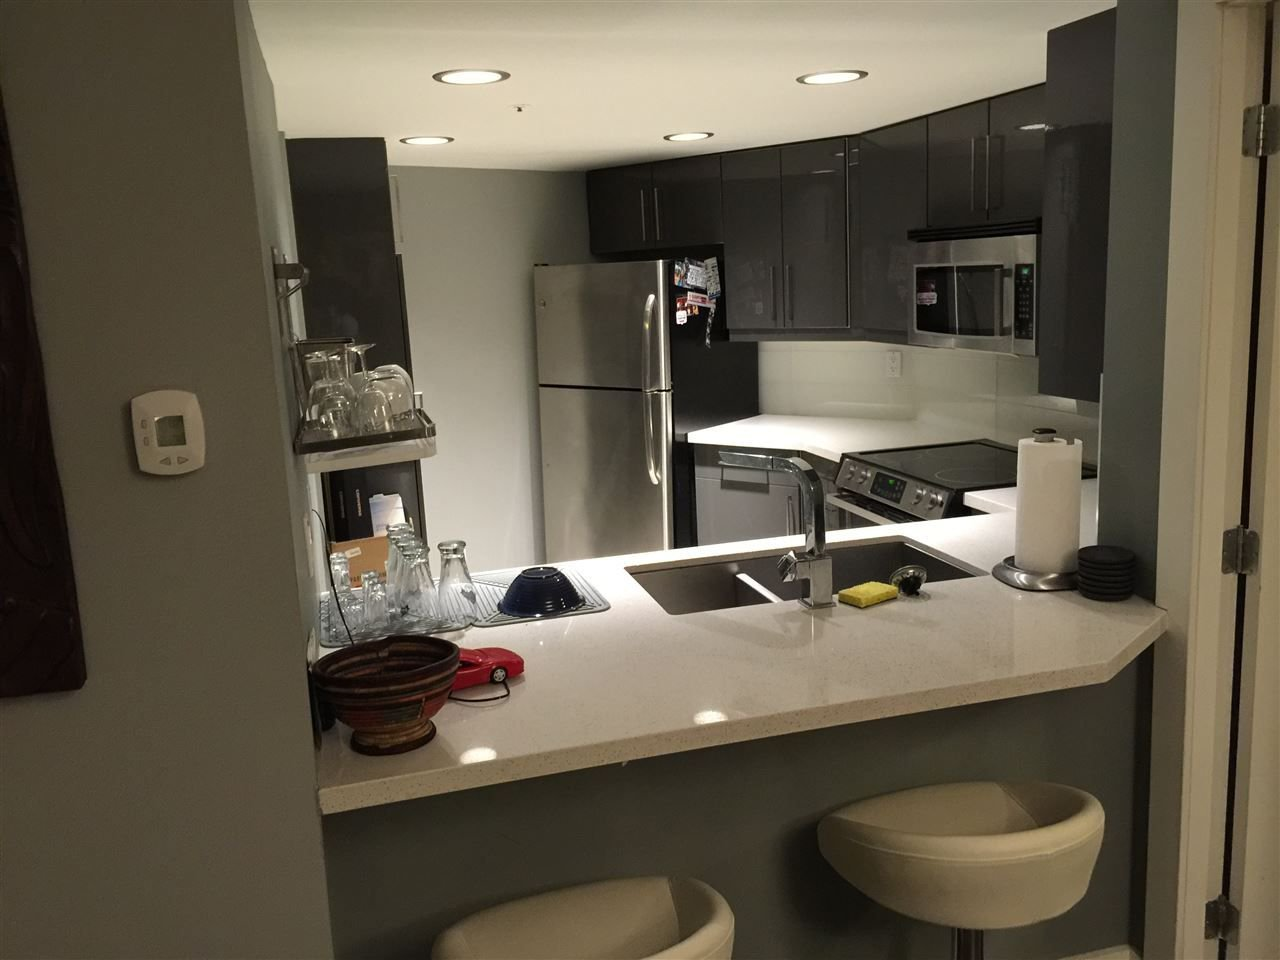 """Photo 8: Photos: 304 183 KEEFER Place in Vancouver: Downtown VW Condo for sale in """"PARIS PLACE"""" (Vancouver West)  : MLS®# R2212938"""